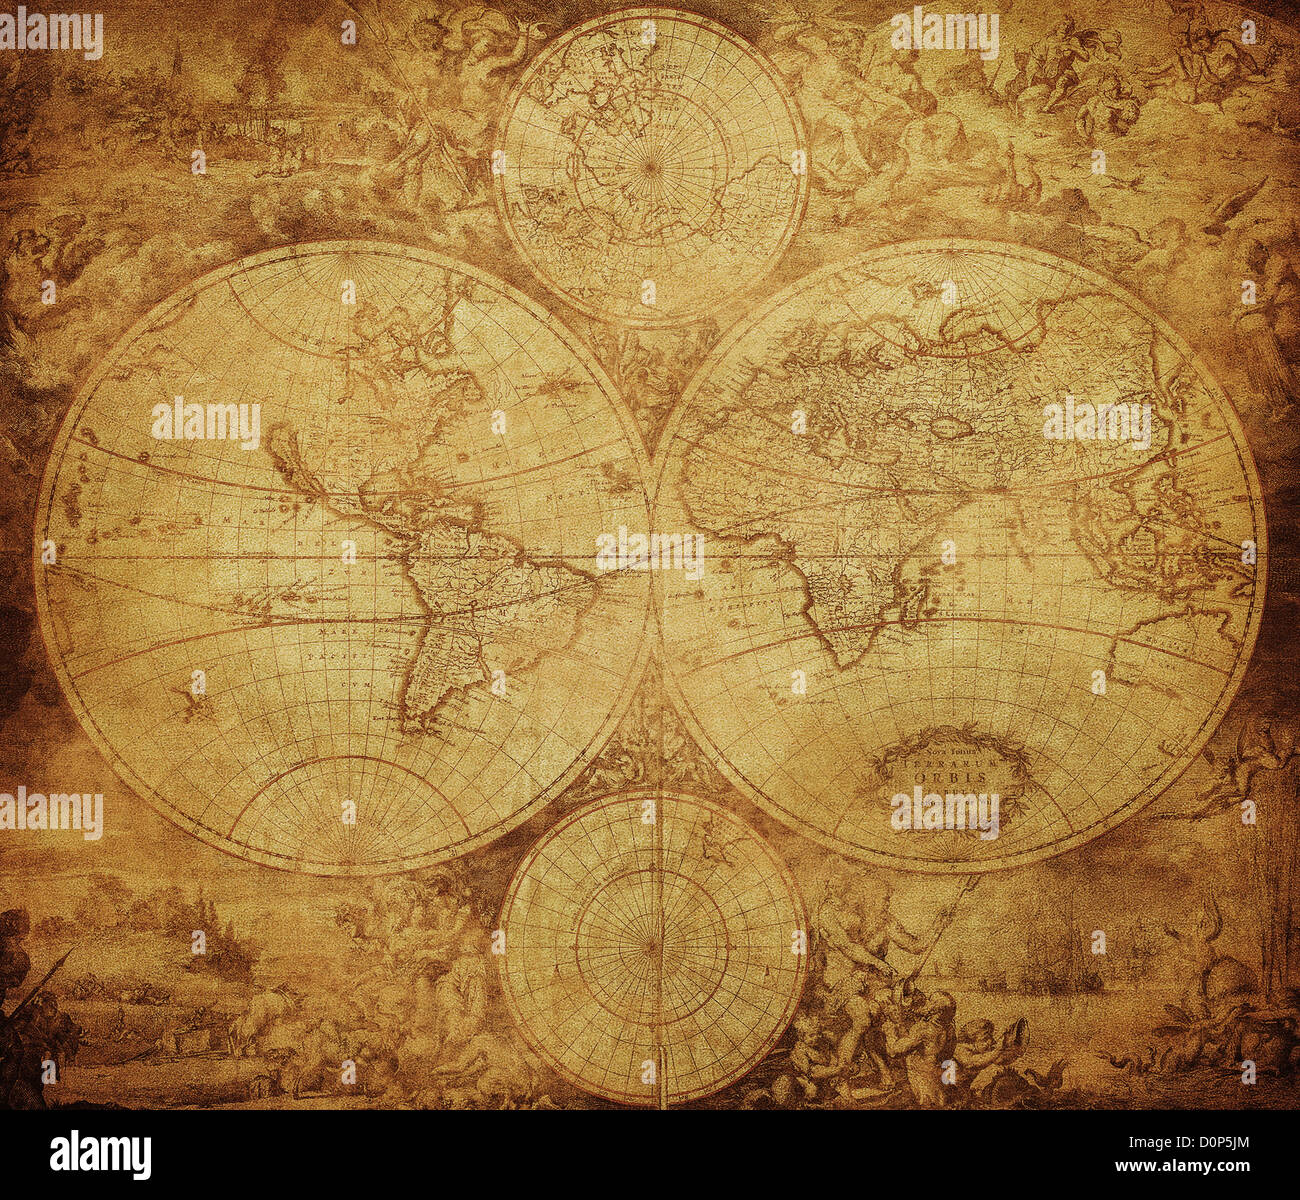 vintage map of the world circa 1675-1710 - Stock Image